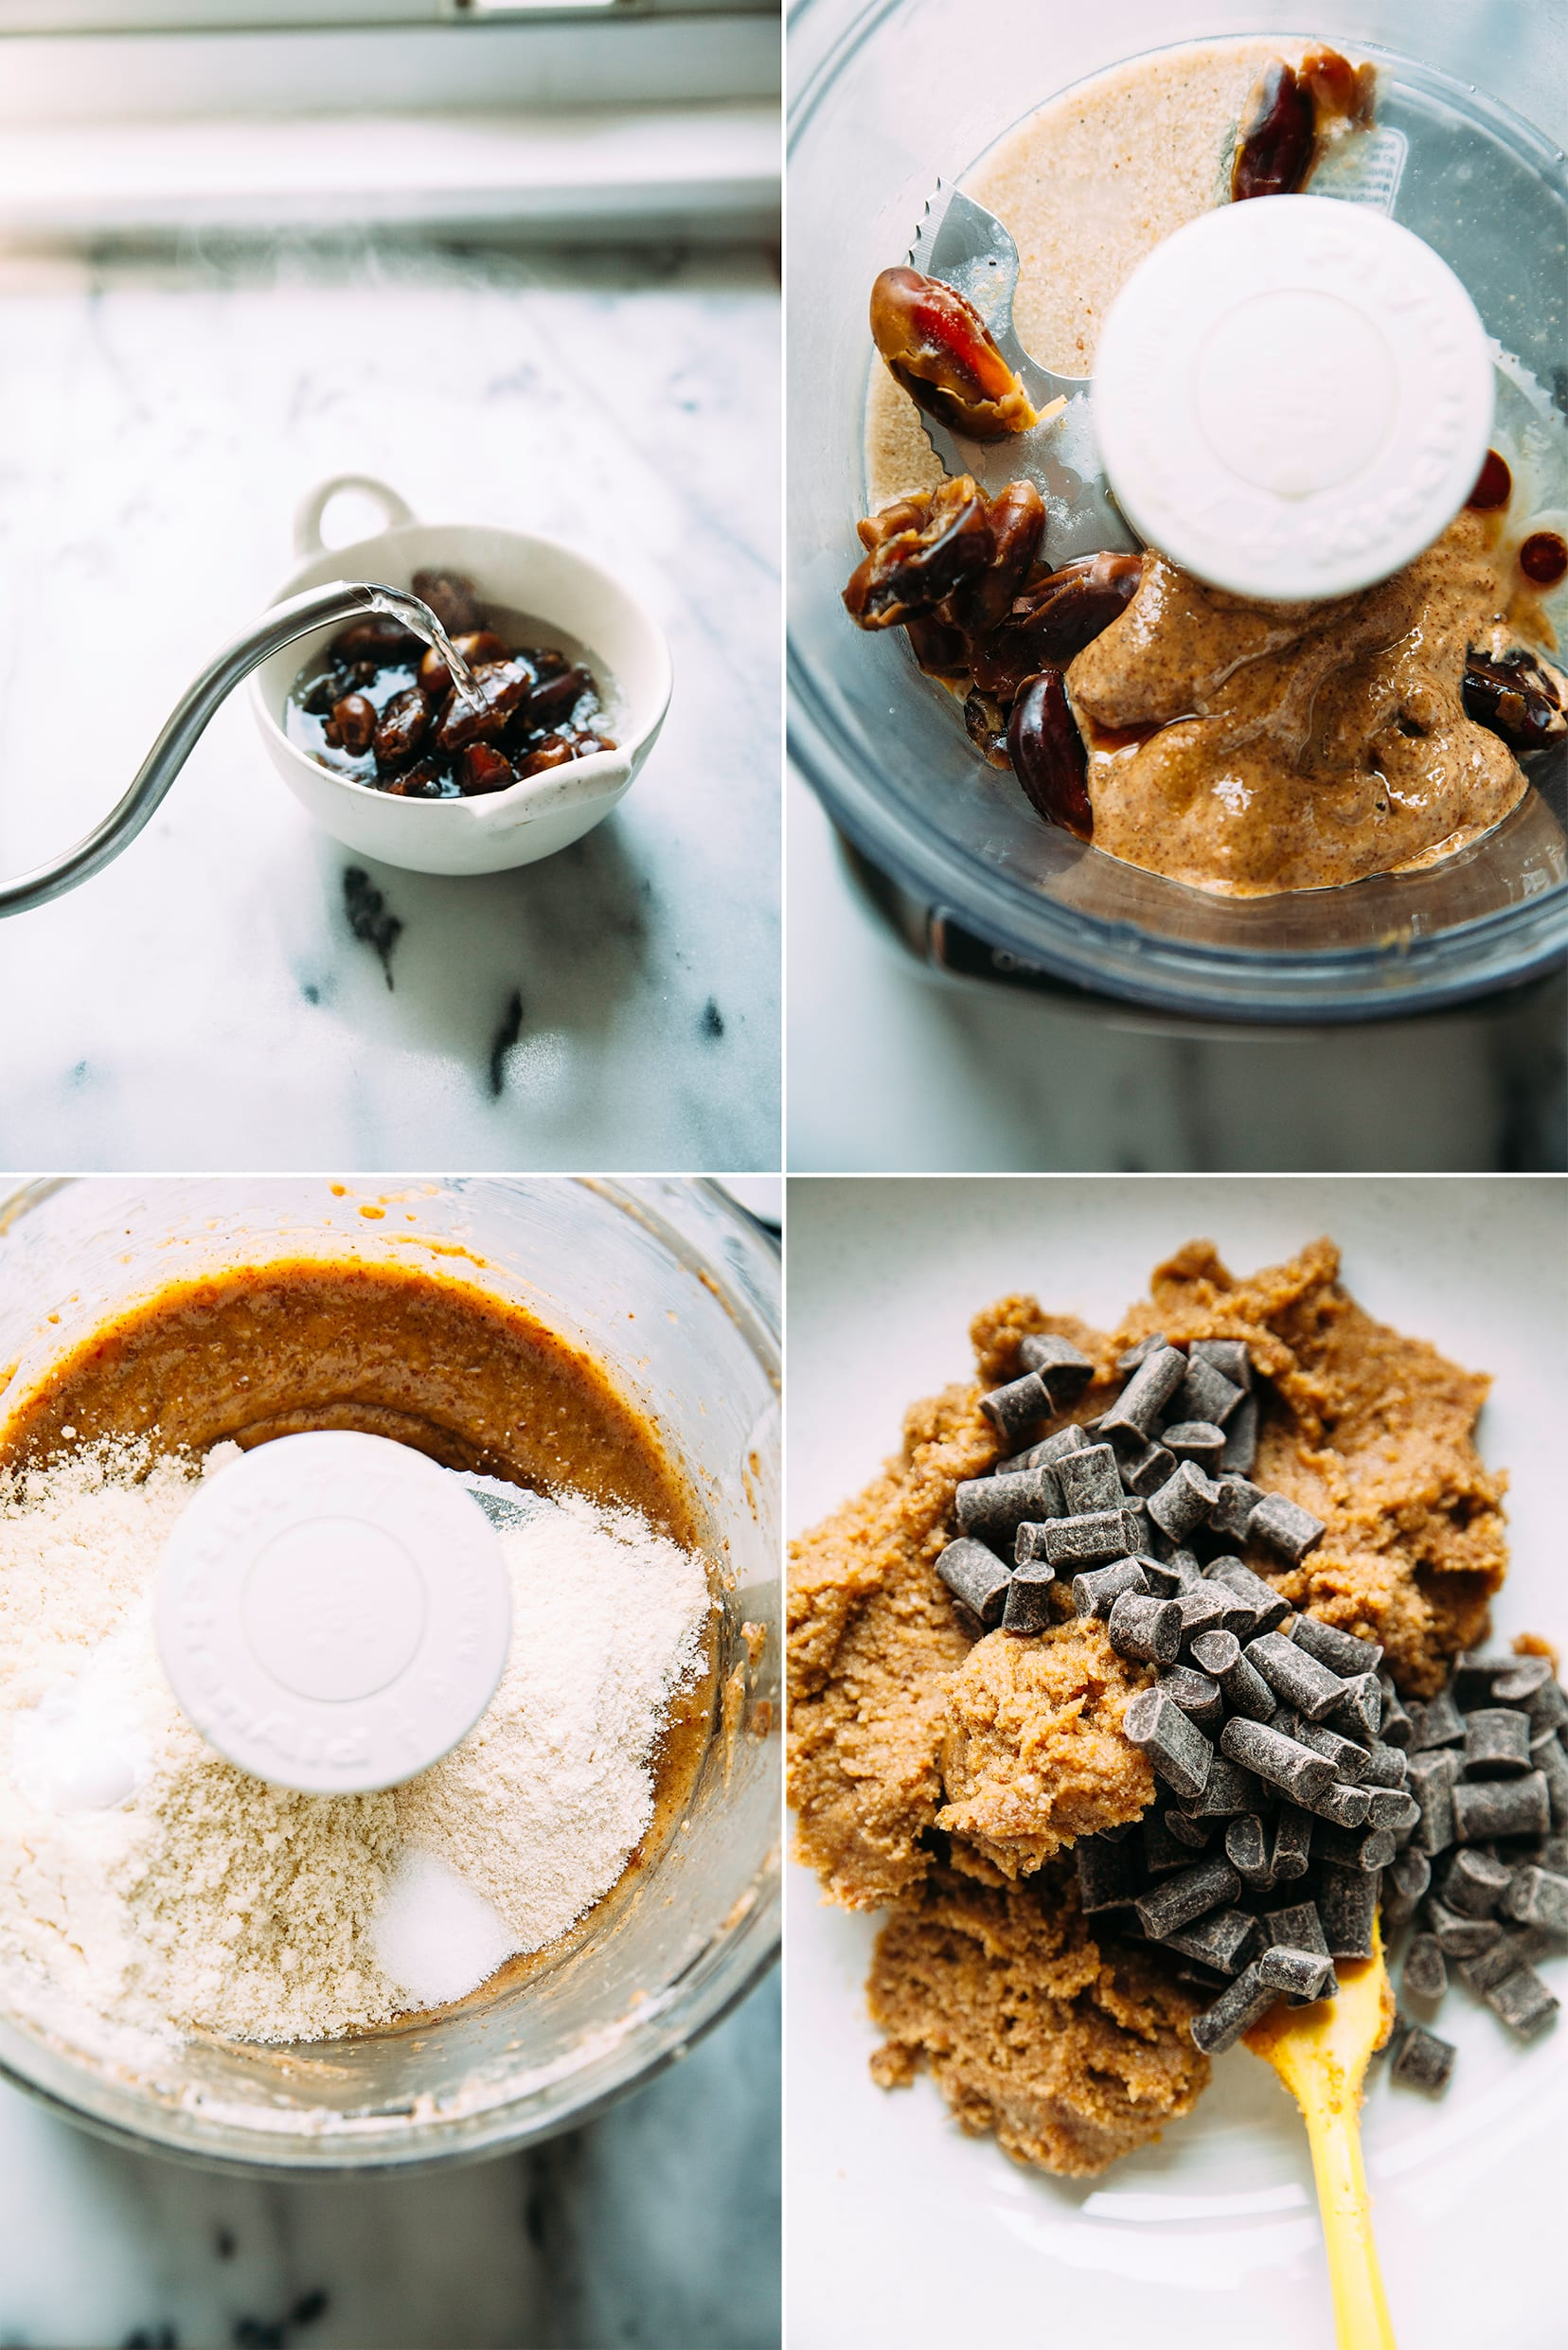 4 photos: hot water being poured over dates in a white bowl, an overhead shot of the food processor with nut butter and dates, another overhead shot of the food processor with almond flour in it, and the last one is an up close shot of the chocolate chunks on top of the cookie batter in a bowl.